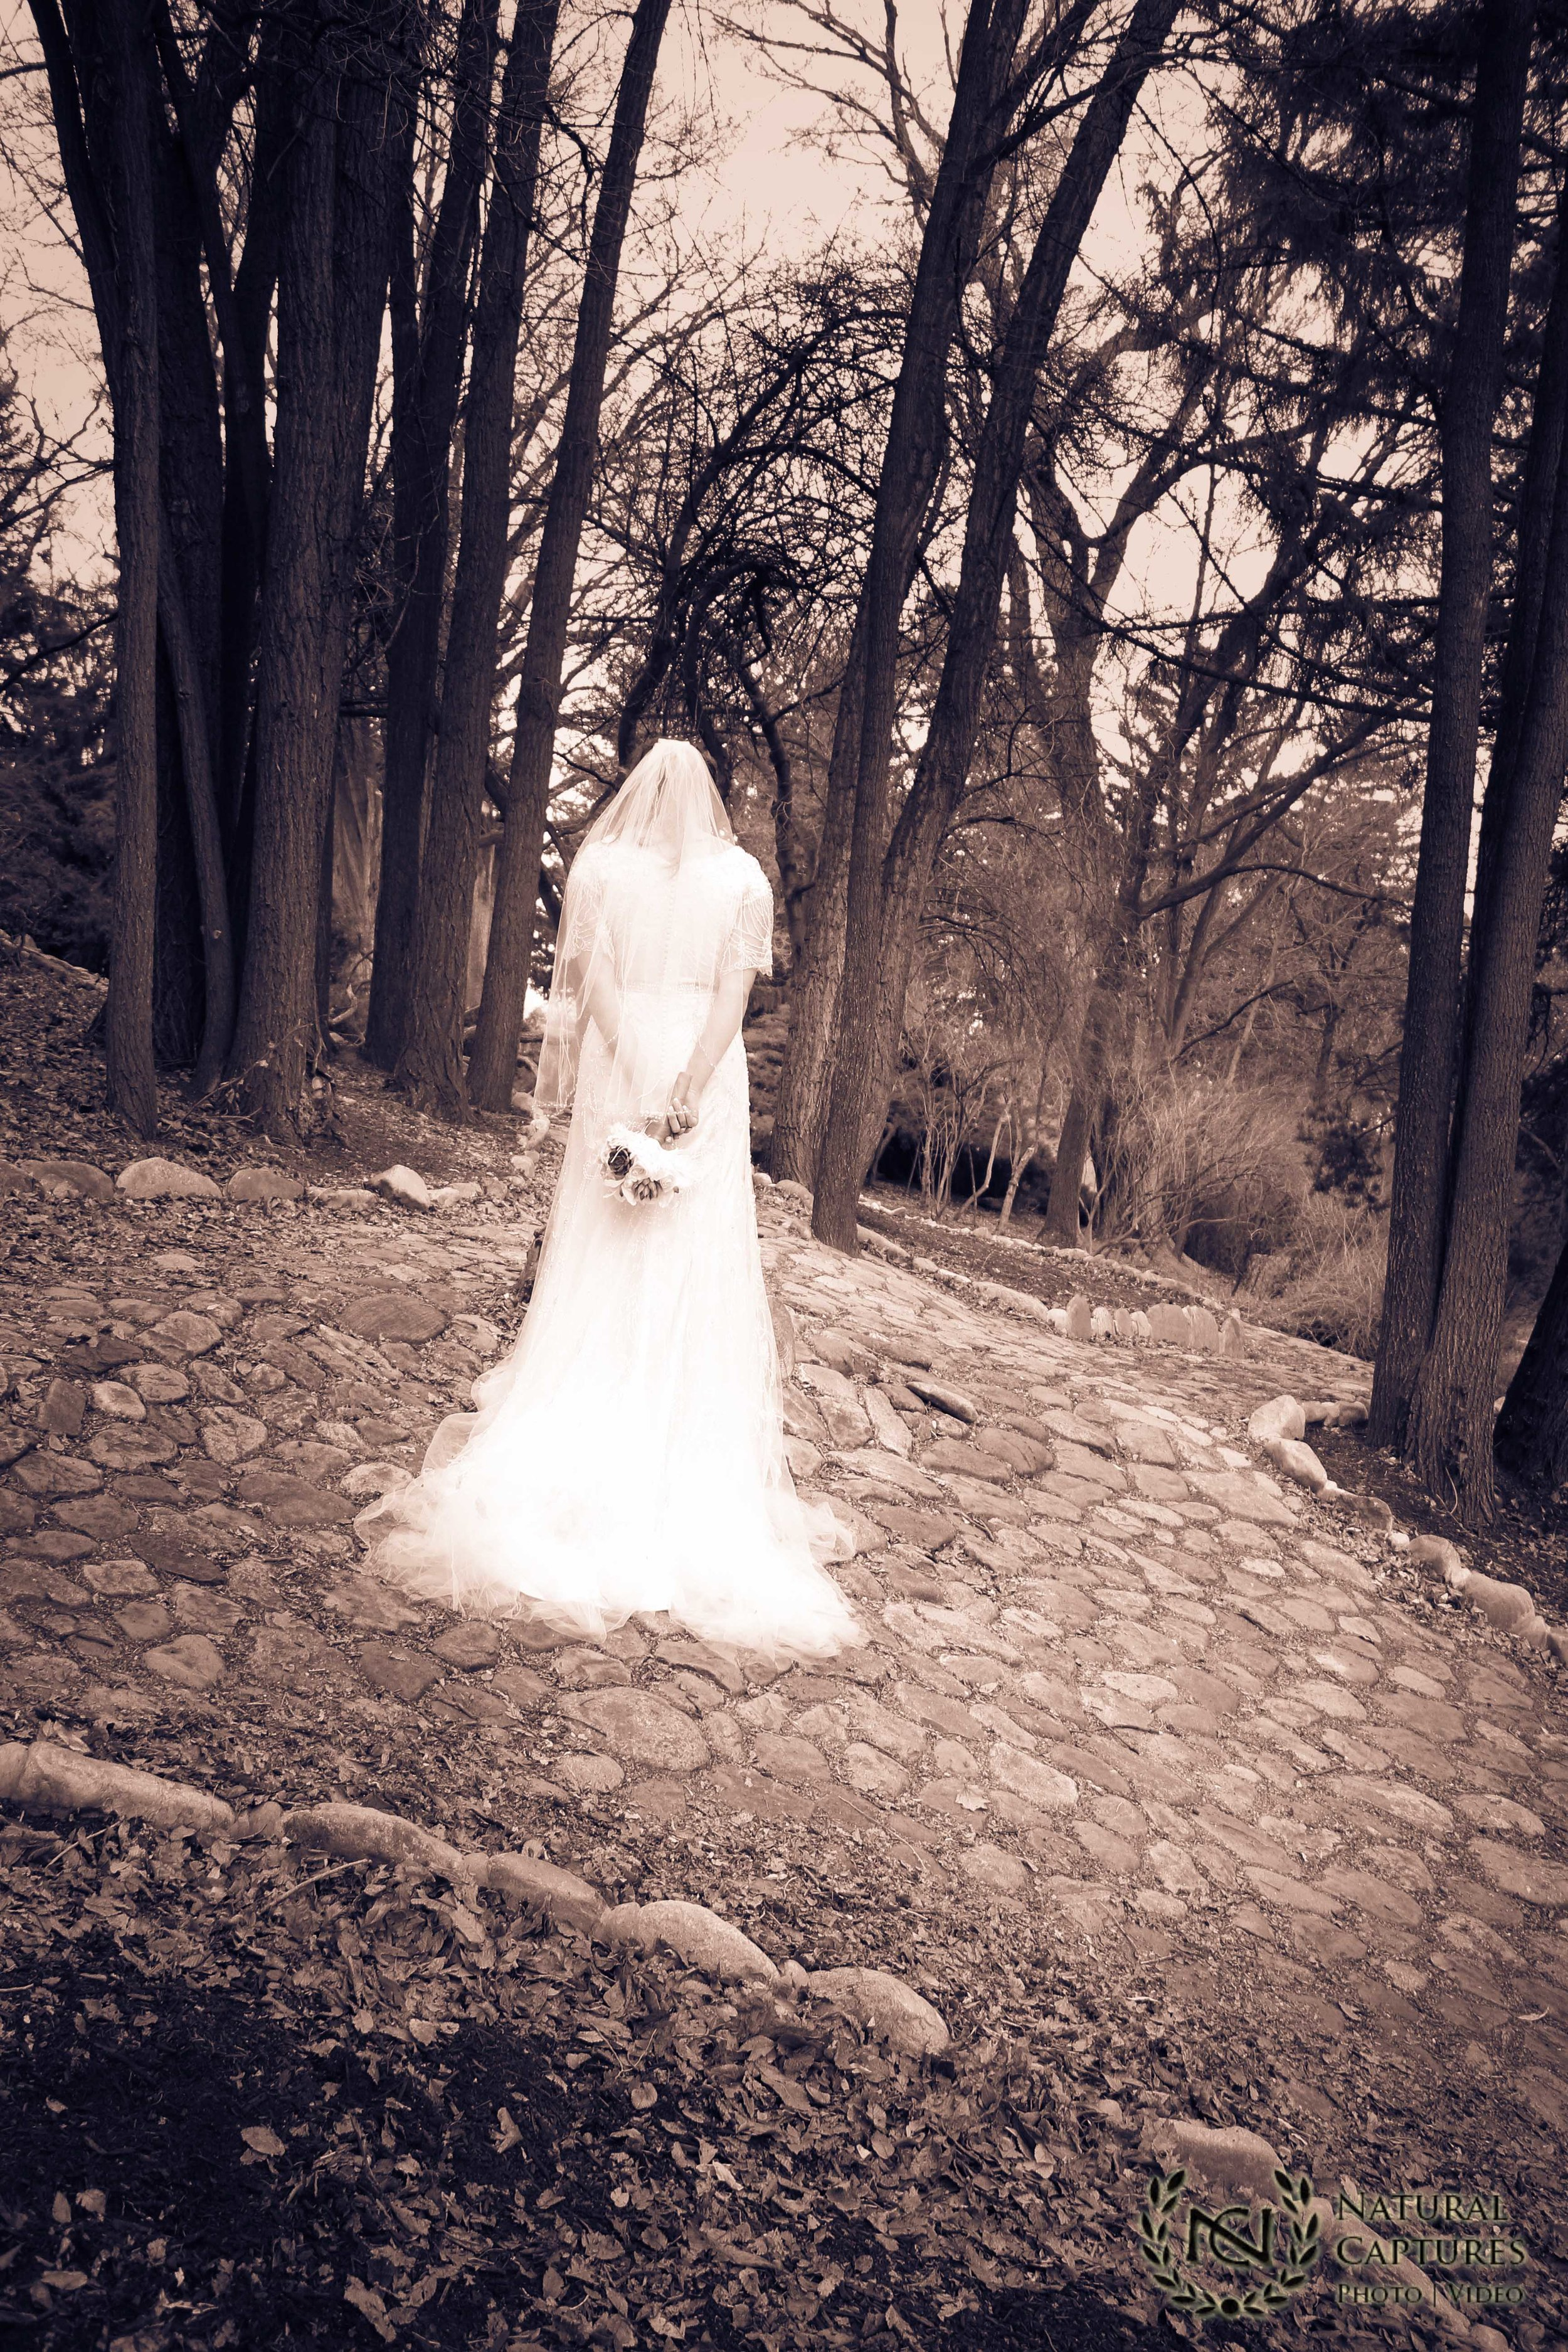 Surreal wedding photo